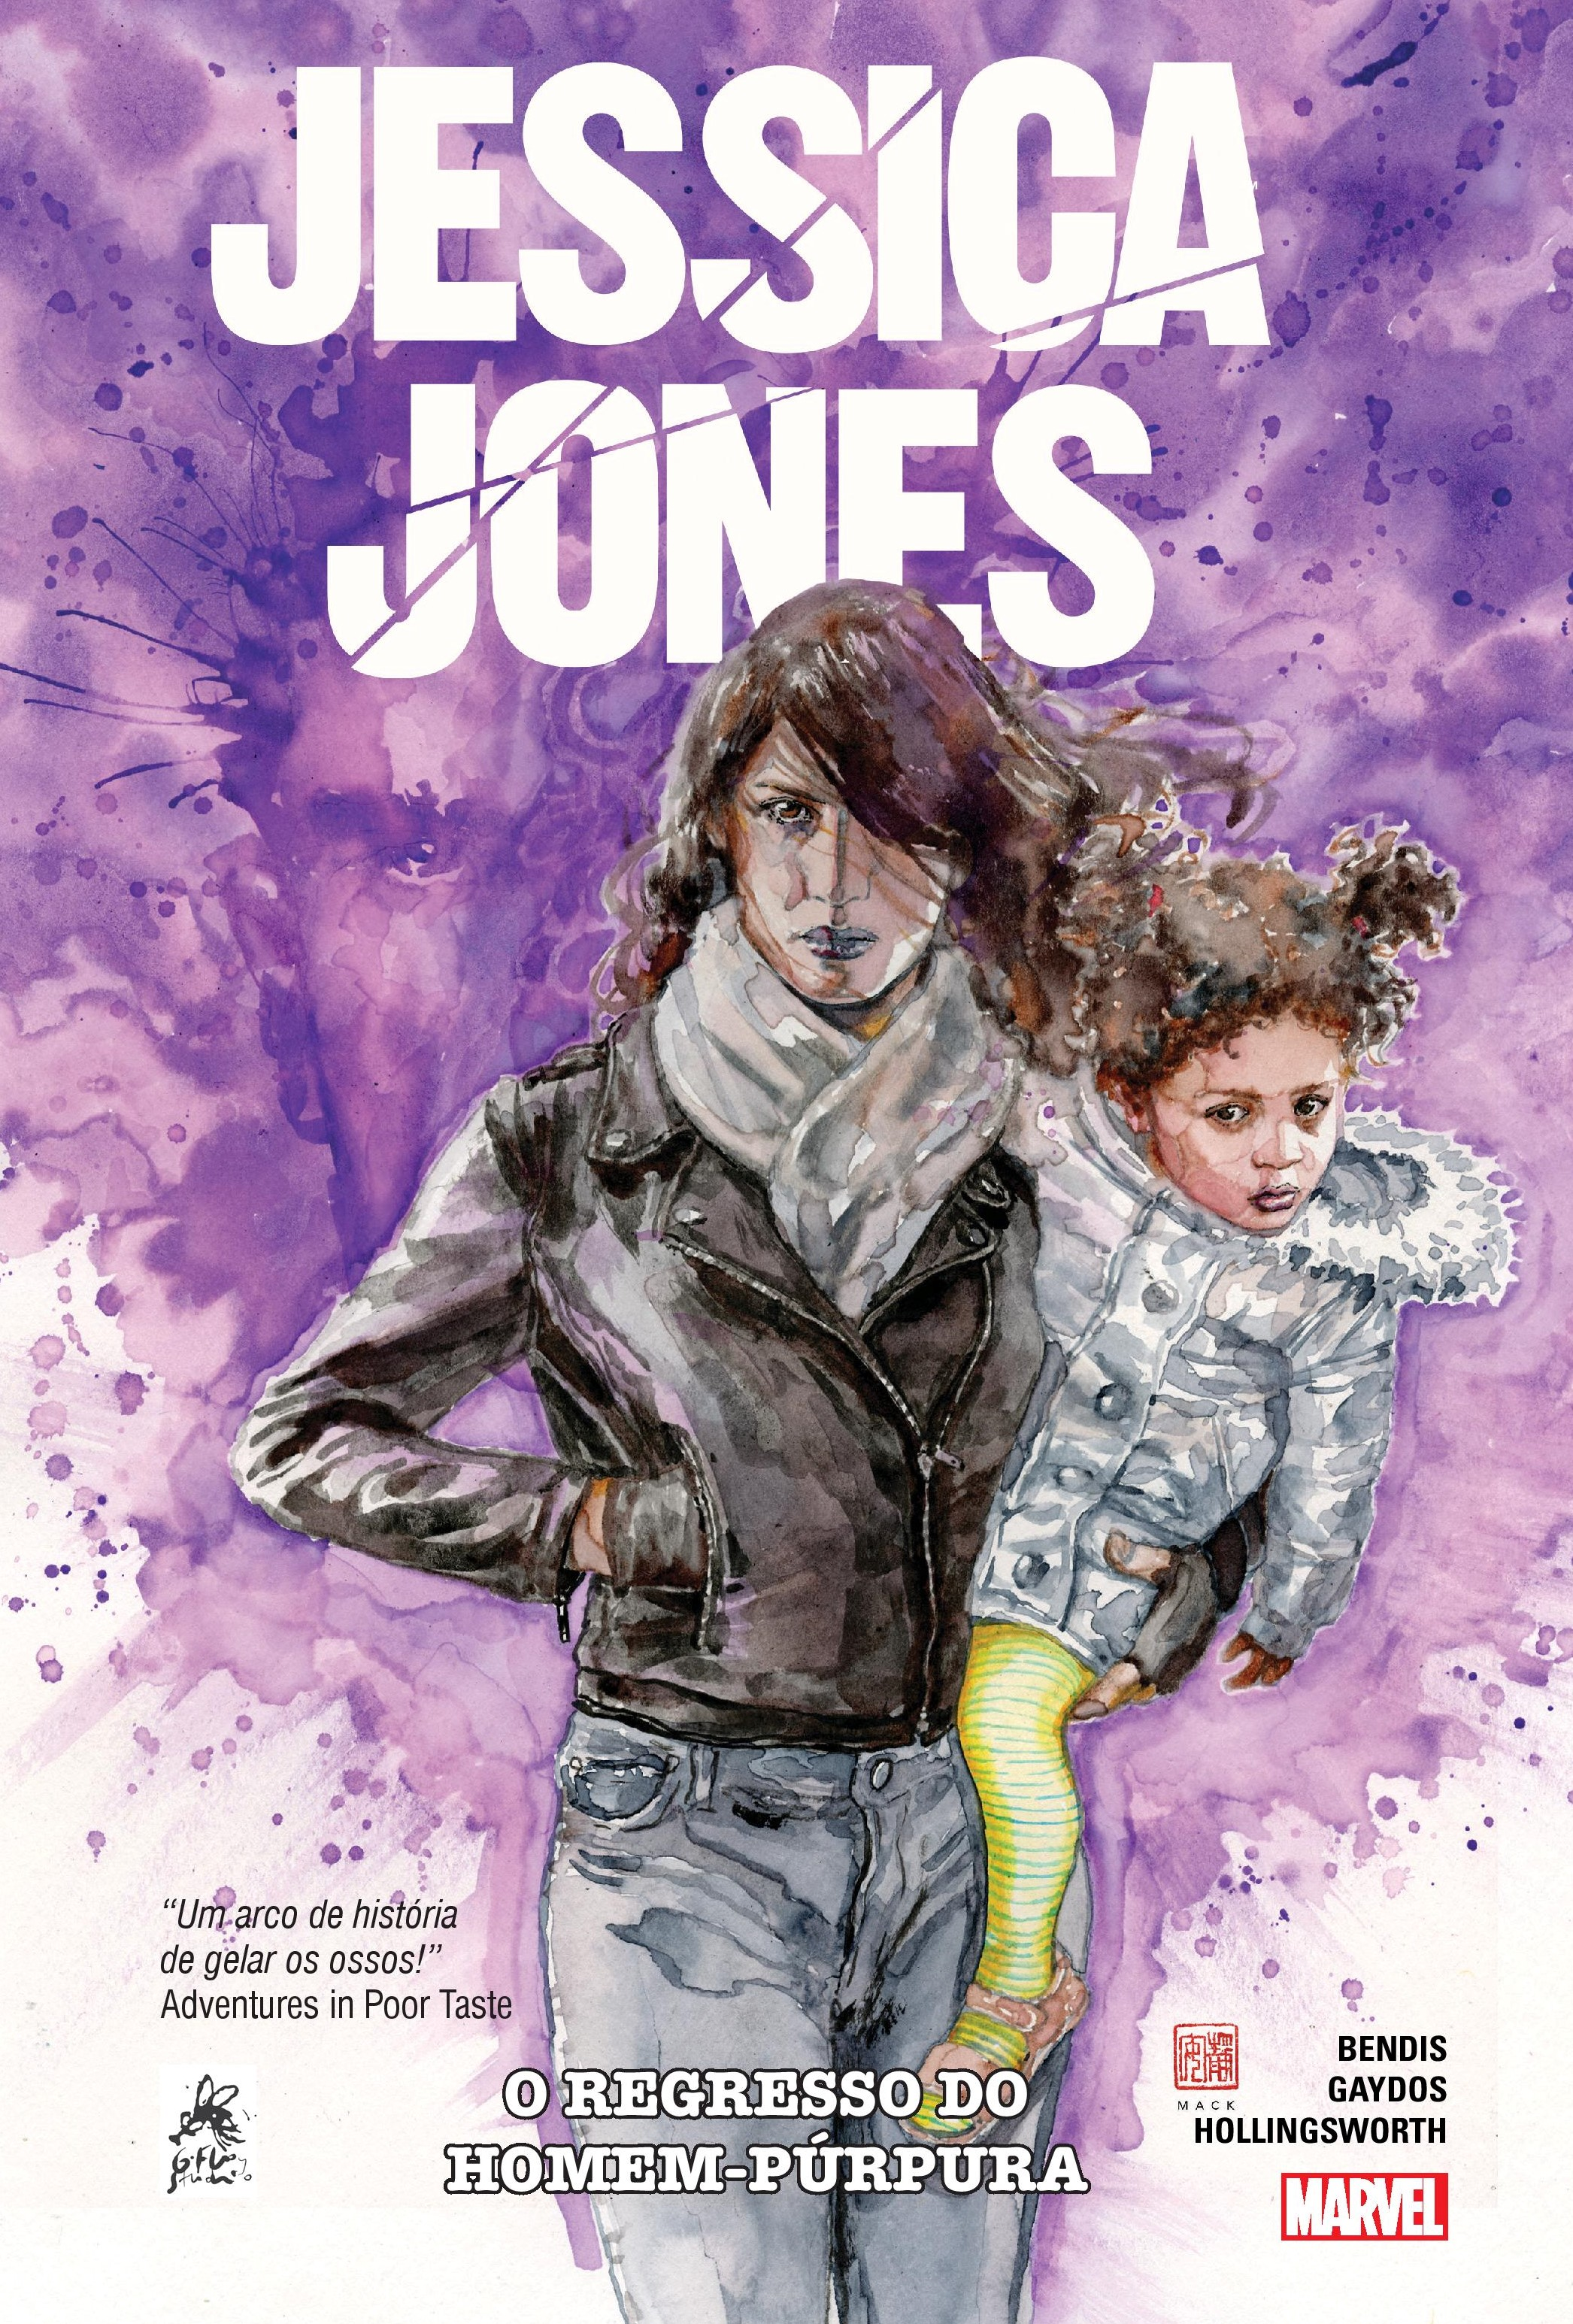 JESSICA JONES vol. 3: O Regresso do Homem-Púrpura